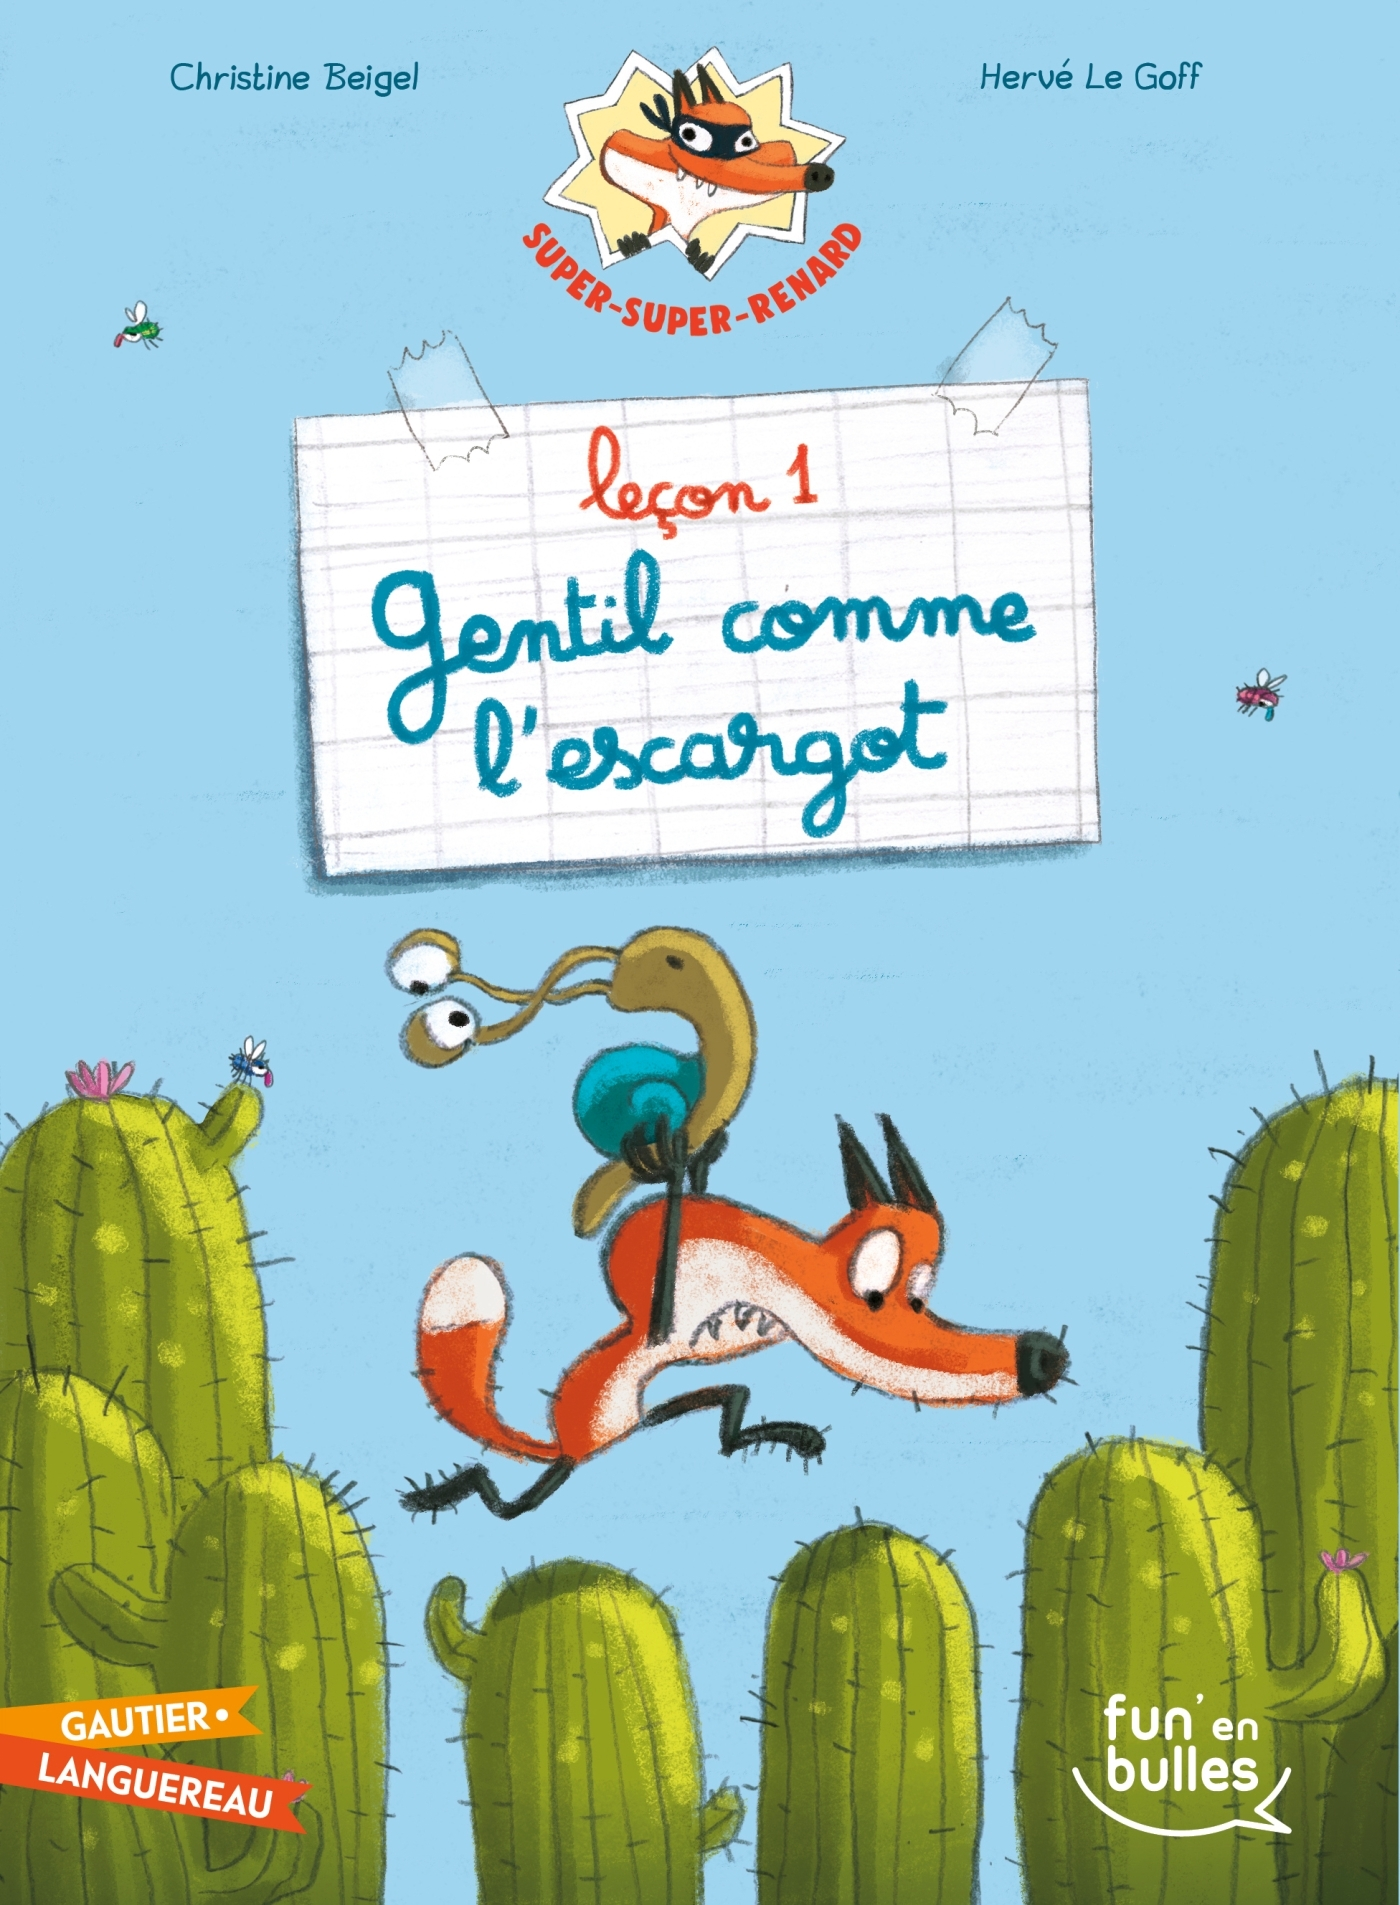 SUPER-SUPER-RENARD - LECON 1 - GENTIL COMME L'ESCARGOT